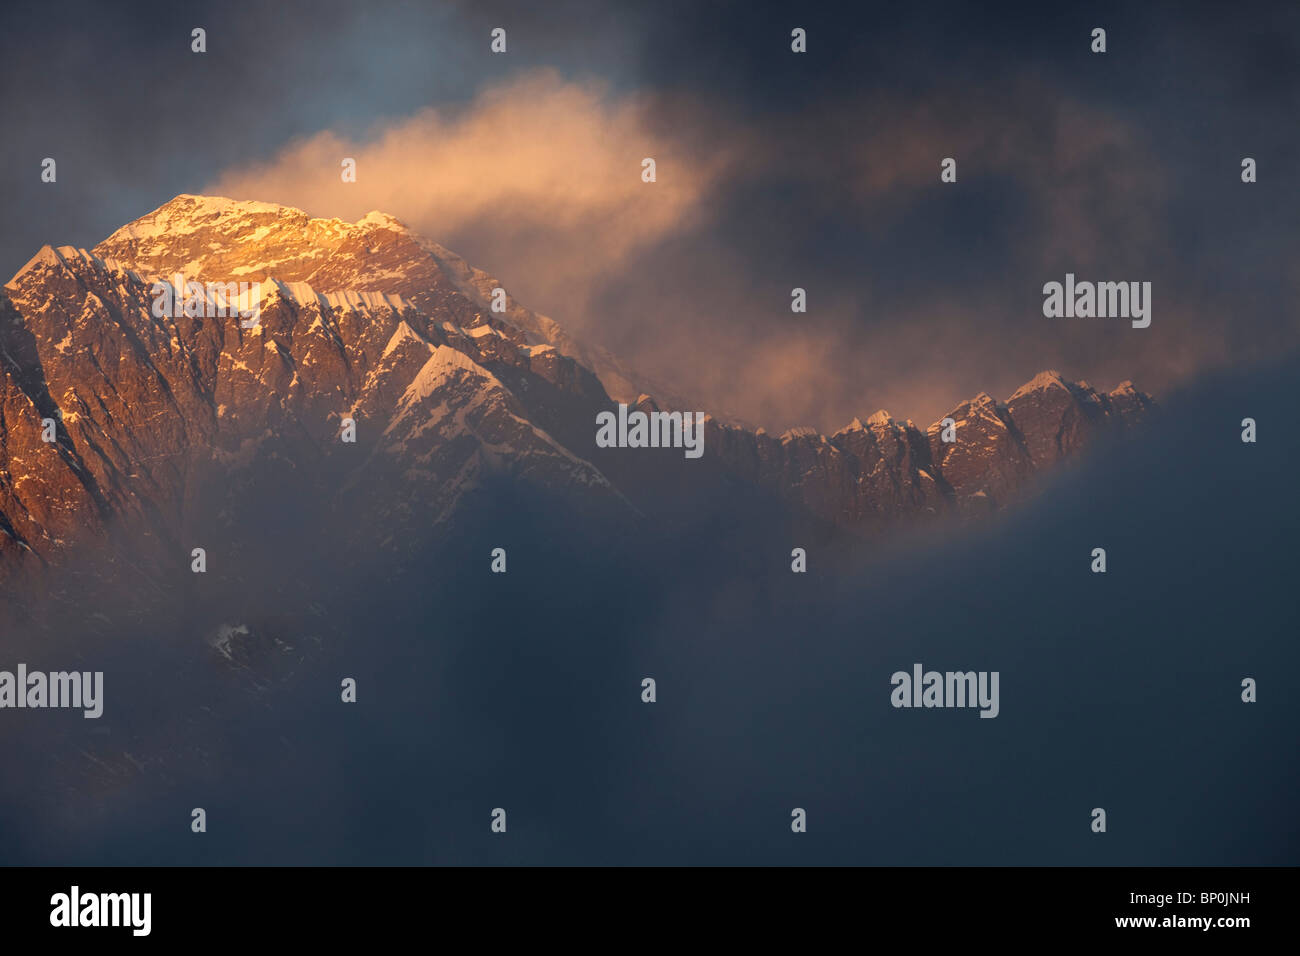 Nepal, Everest Region, Khumbu Valley. Mount Everest at sunset. - Stock Image